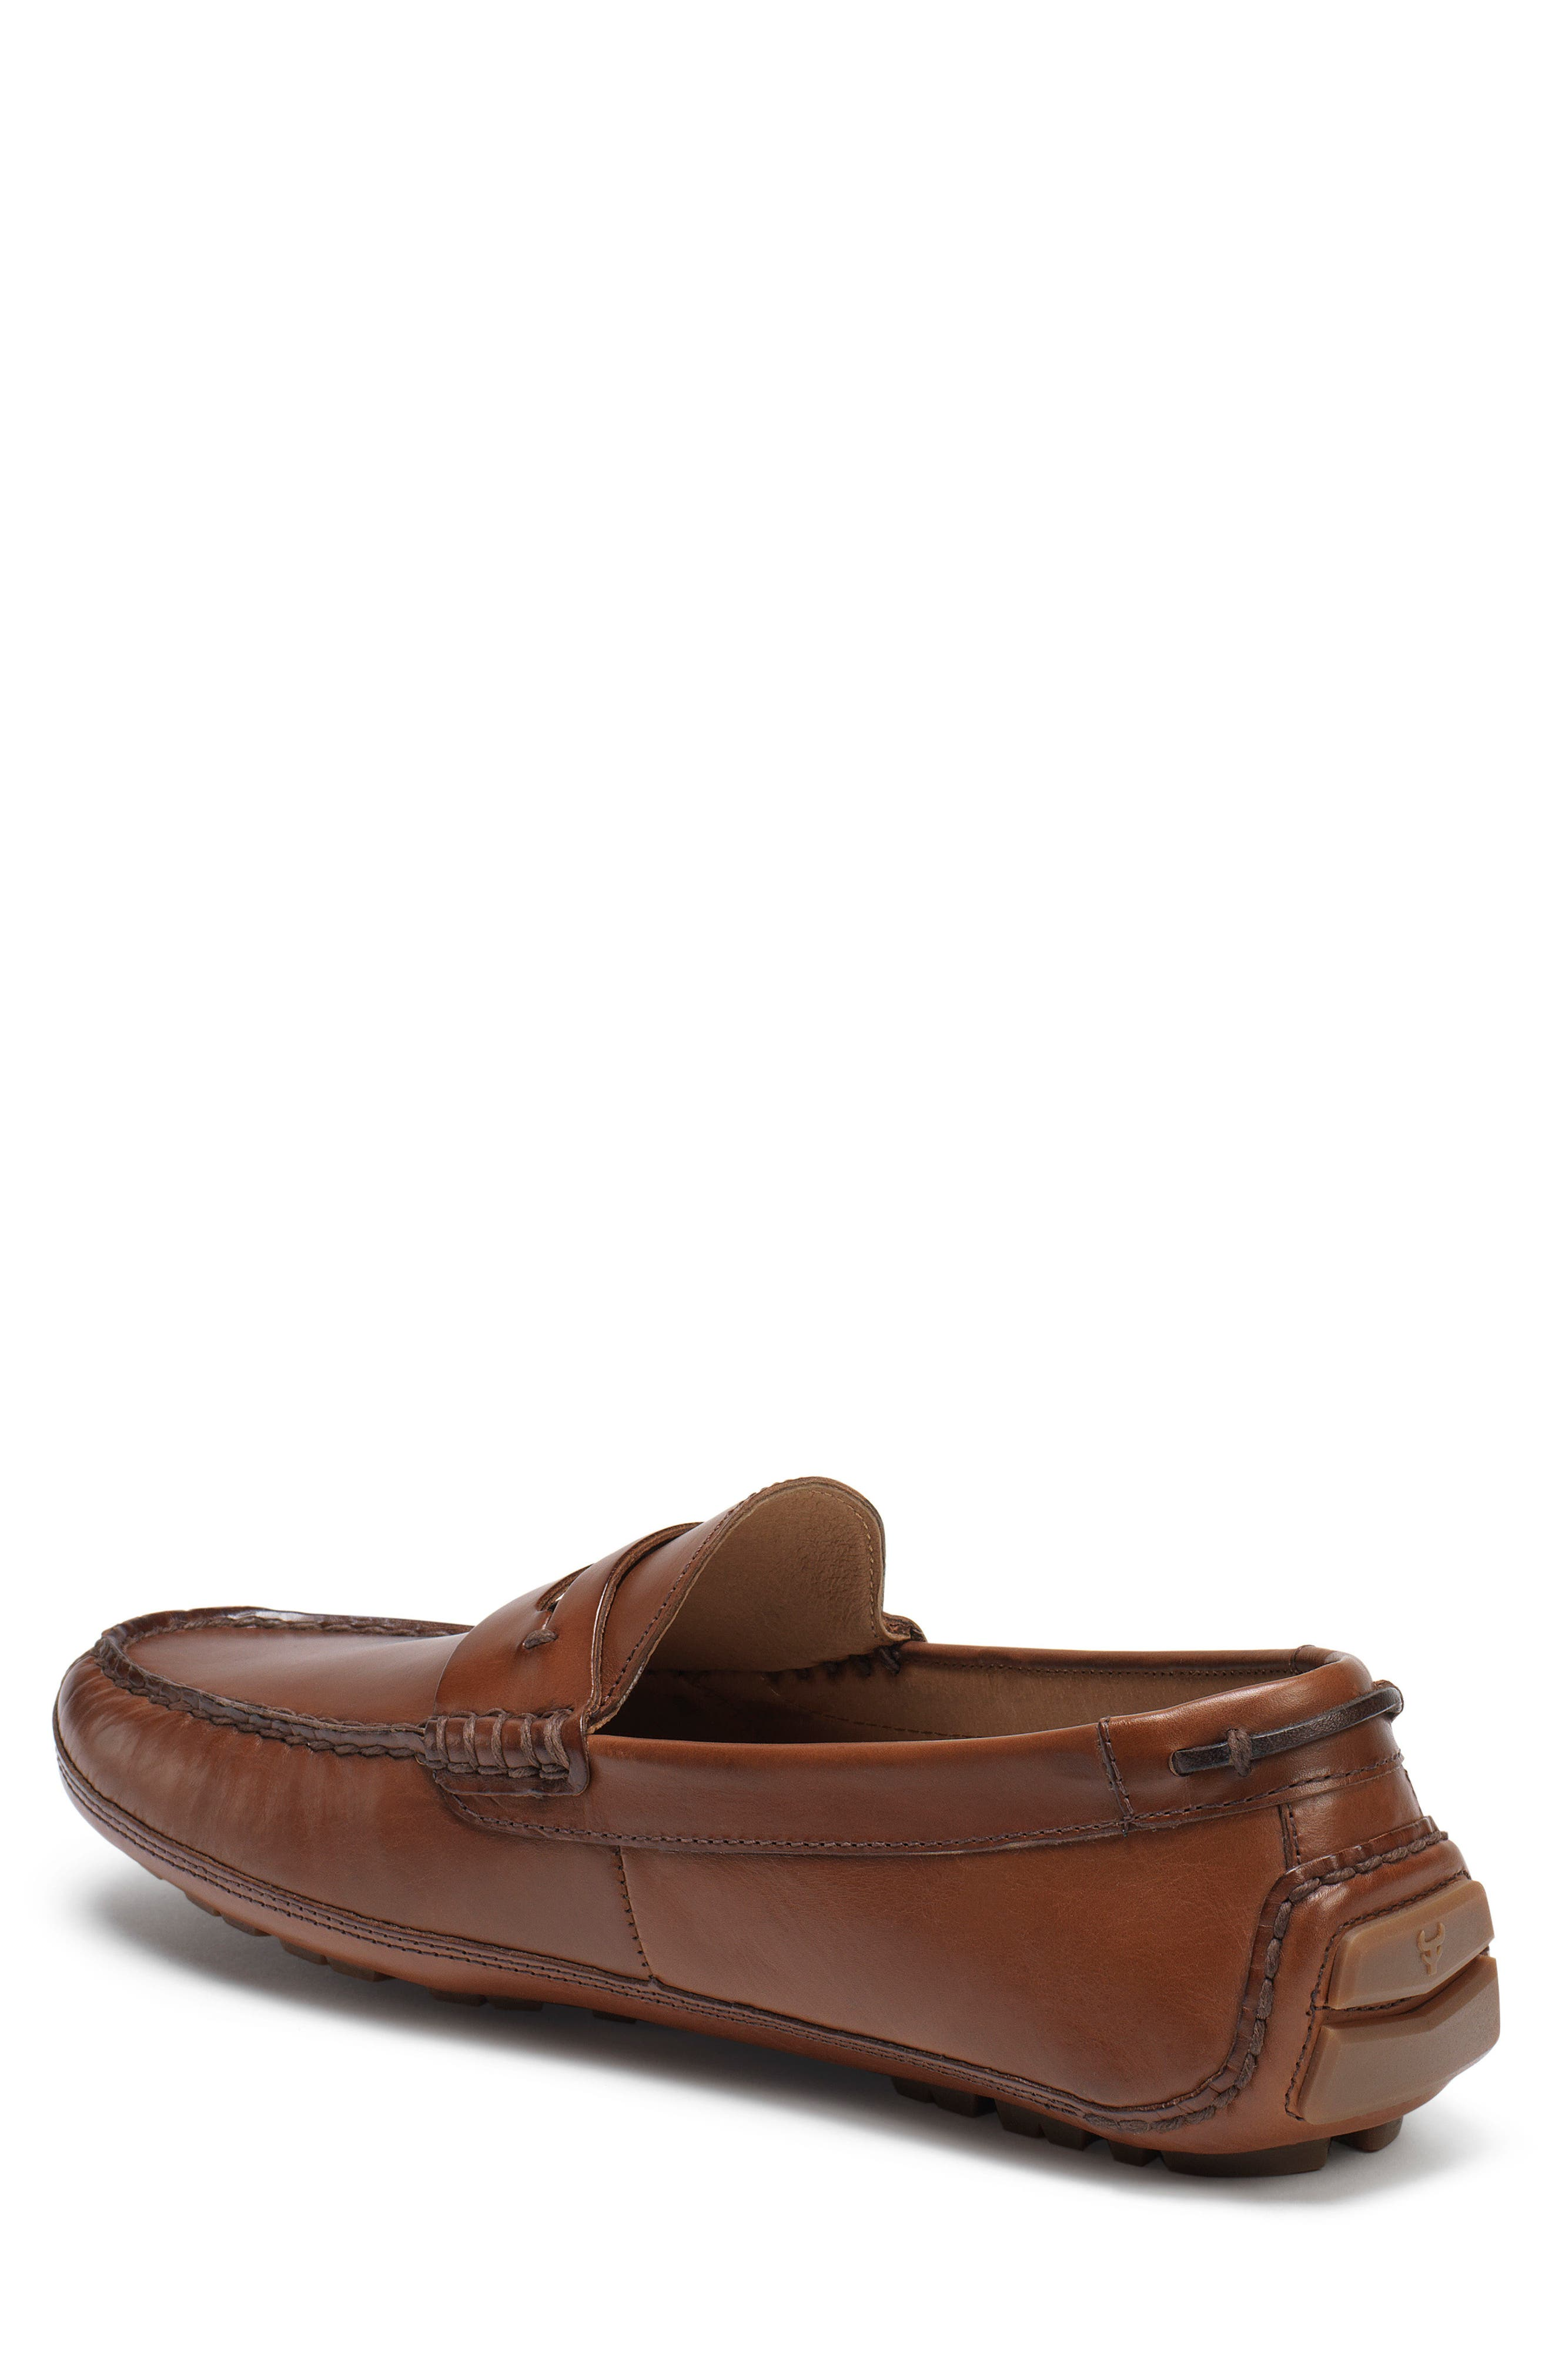 39085fa756e Loafers Trask